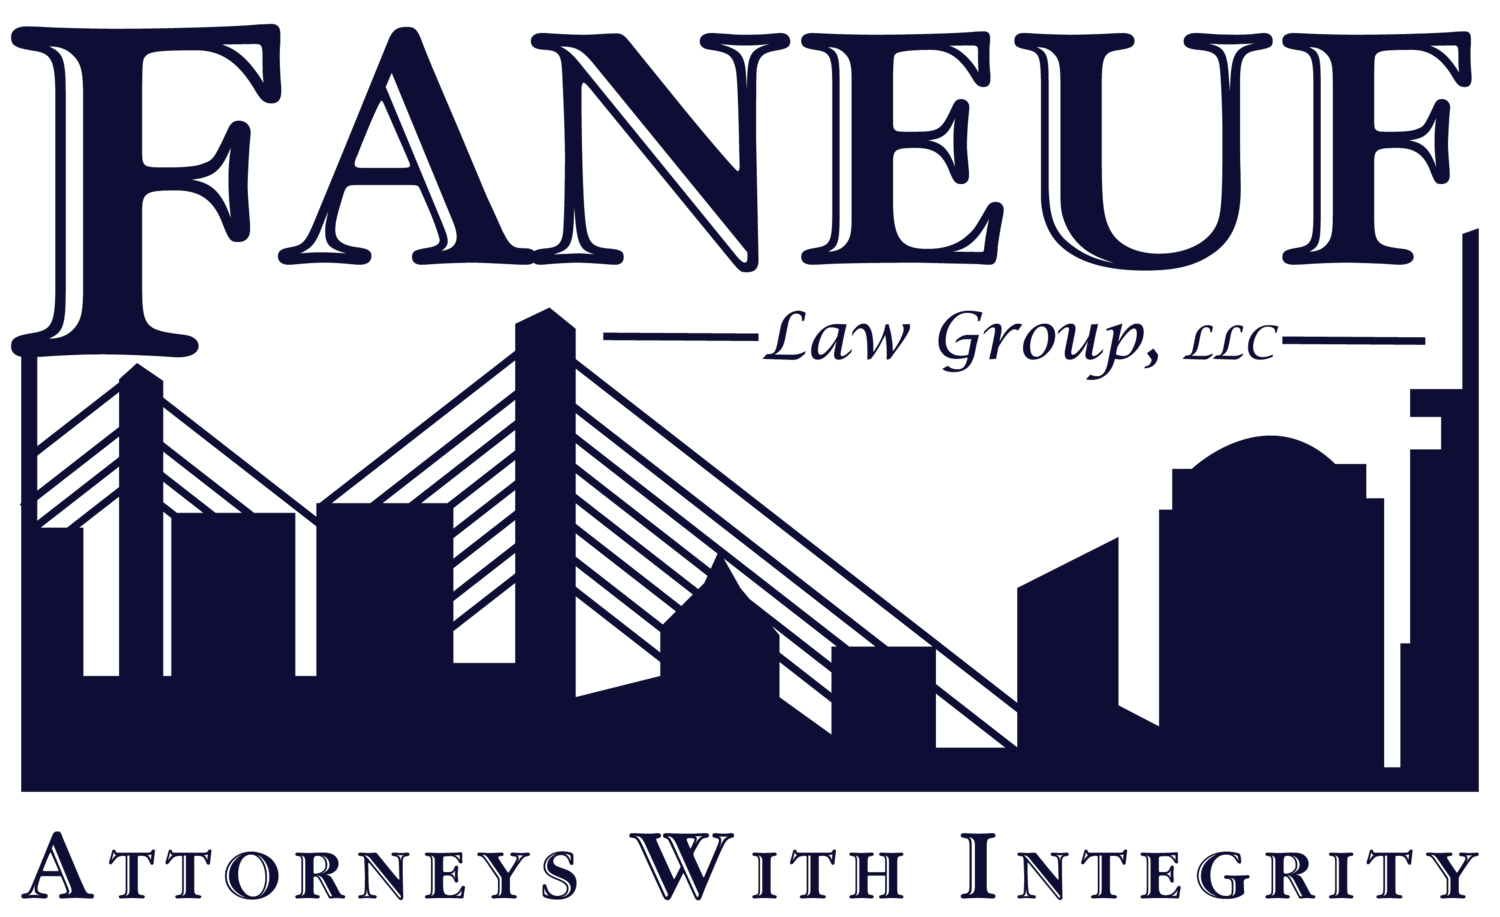 Boston Personal Injury Attorneys - Faneuf Law Group